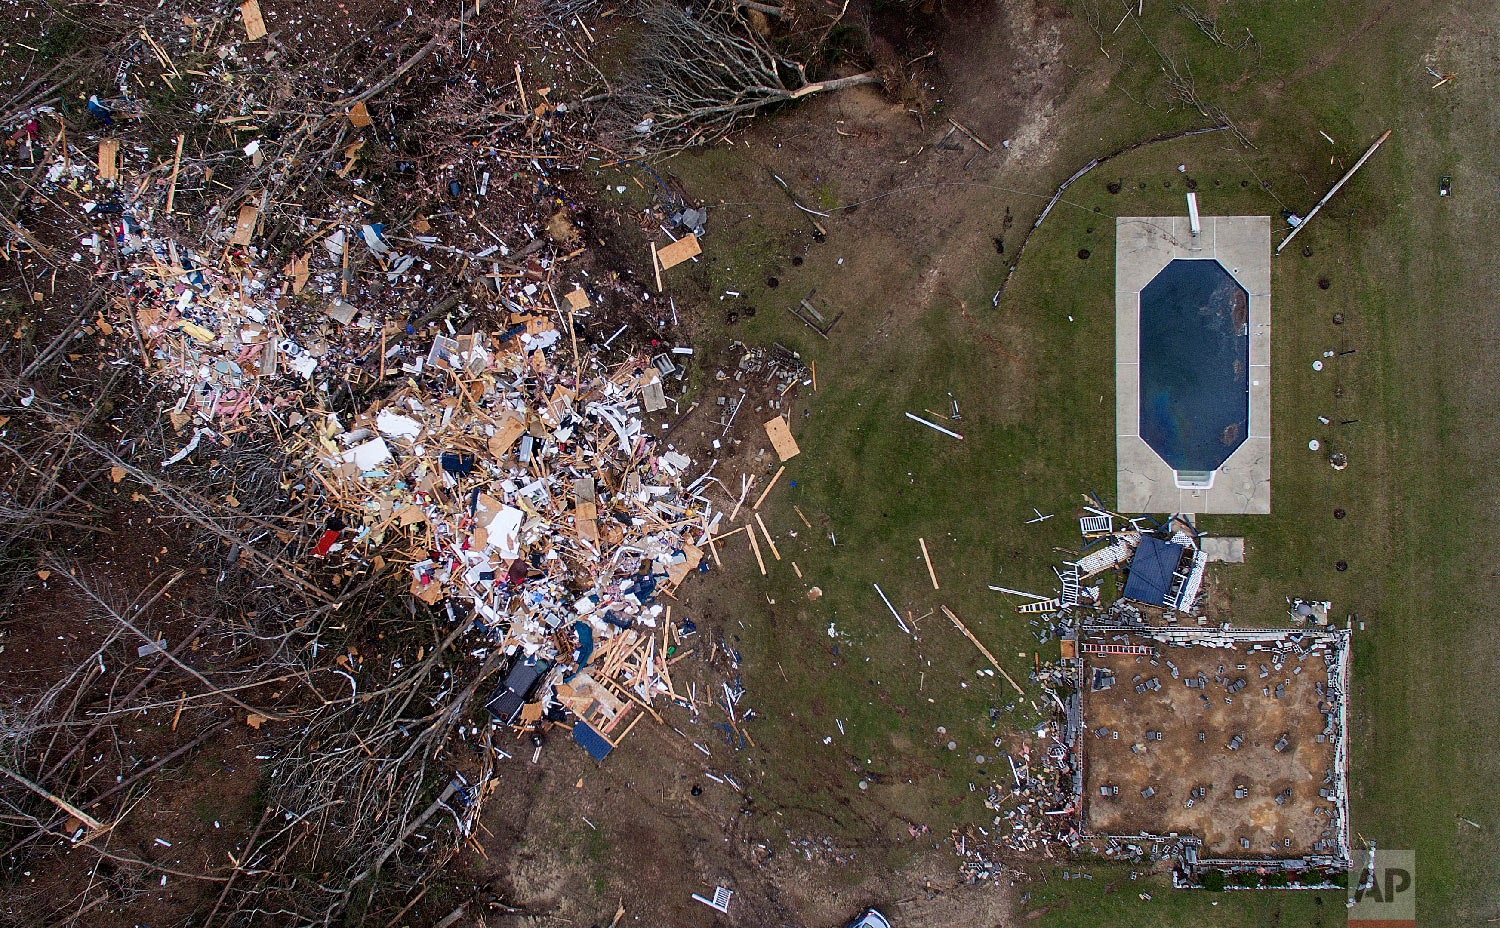 Debris from a home litters a yard the day after a tornado blew it off its foundation, lower right, in Beauregard, Ala., March 4, 2019. (AP Photo/David Goldman)